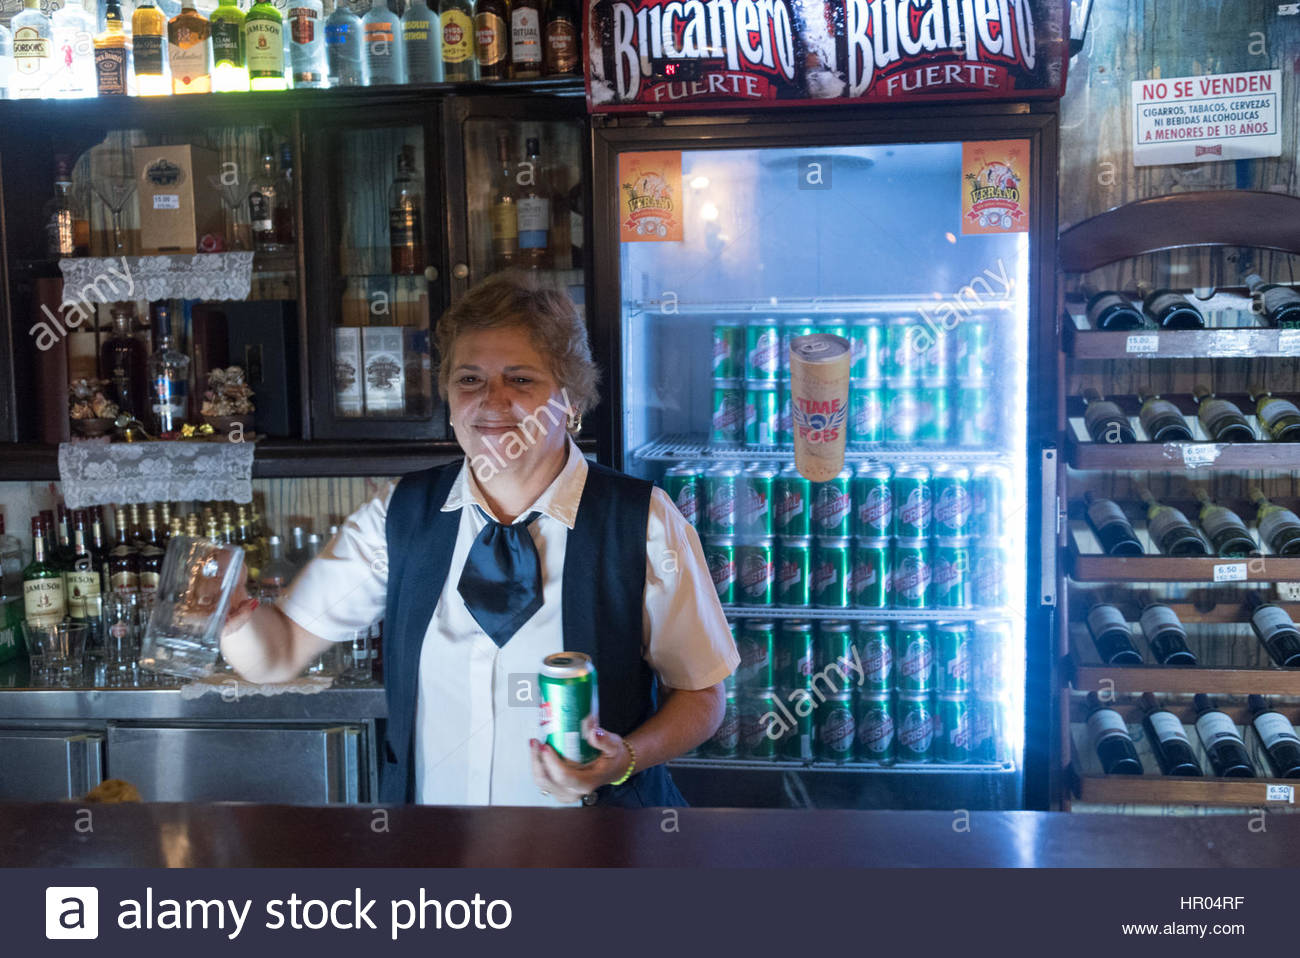 Cuban real people lifestyle: woman gastronomic waitress serving a Cristal beer in 'El Cambio' traditional - Stock Image